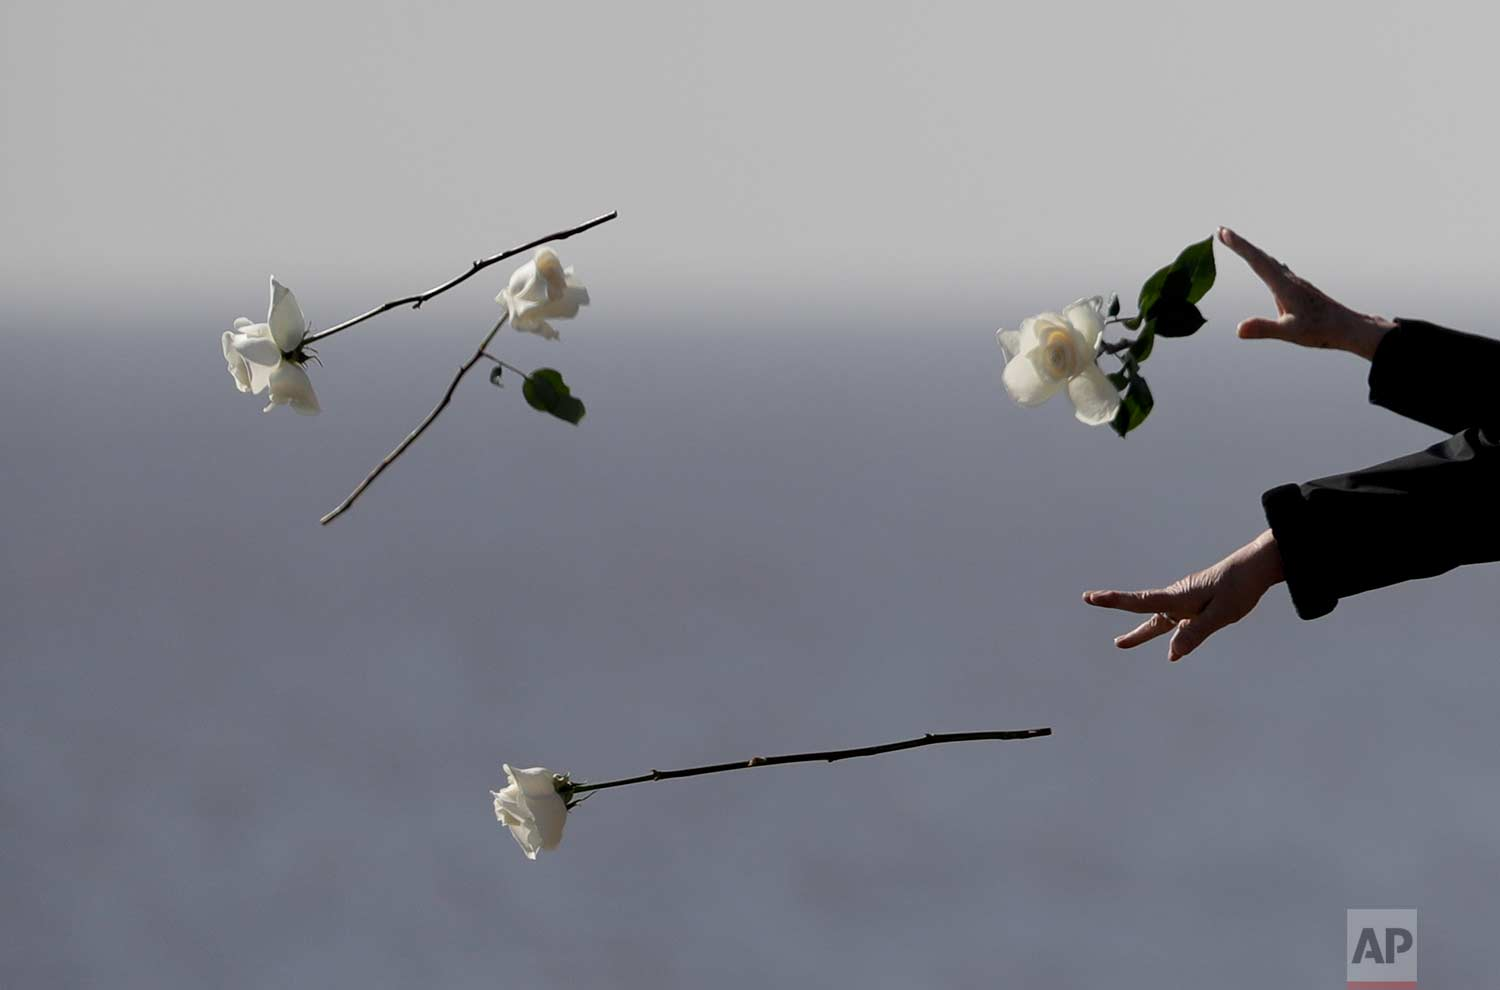 Chile's President Michelle Bachelet, bottom, and others cast flowers into the Rio de la Plata during a visit to Memory Park which honors the victims of the country's dictatorship, in Buenos Aires, Argentina, on Thursday, July 20, 2017. (AP Photo/Natacha Pisarenko)